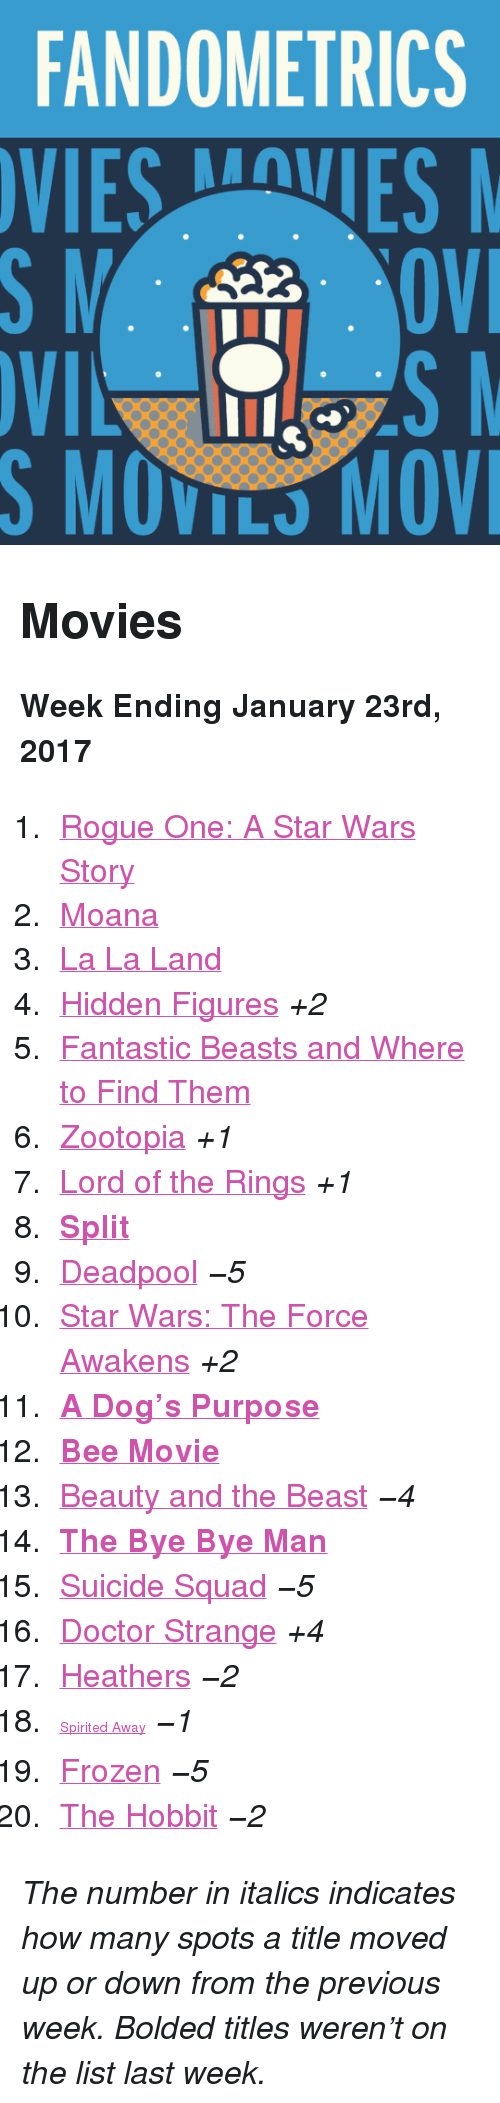 "Star Wars: The Force Awakens: FANDOMETRICS  VIESVES  S MOVILS MOV <h2>Movies</h2><p><b>Week Ending January 23rd, 2017</b></p><ol><li><a href=""http://www.tumblr.com/search/rogue%20one"">Rogue One: A Star Wars Story</a></li>  <li><a href=""http://www.tumblr.com/search/moana"">Moana</a></li>  <li><a href=""http://www.tumblr.com/search/la%20la%20land"">La La Land</a></li>  <li><a href=""http://www.tumblr.com/search/hidden%20figures"">Hidden Figures</a> <i>+2</i></li>  <li><a href=""http://www.tumblr.com/search/fantastic%20beasts%20and%20where%20to%20find%20them"">Fantastic Beasts and Where to Find Them</a></li>  <li><a href=""http://www.tumblr.com/search/zootopia"">Zootopia</a> <i>+1</i></li>  <li><a href=""http://www.tumblr.com/search/lotr"">Lord of the Rings</a> <i>+1</i></li>  <li><a href=""http://www.tumblr.com/search/split""><b>Split</b></a></li>  <li><a href=""http://www.tumblr.com/search/deadpool"">Deadpool</a> <i>−5</i></li>  <li><a href=""http://www.tumblr.com/search/the%20force%20awakens"">Star Wars: The Force Awakens</a> <i>+2</i></li>  <li><a href=""http://www.tumblr.com/search/a%20dogs%20purpose""><b>A Dog&rsquo;s Purpose</b></a></li>  <li><a href=""http://www.tumblr.com/search/bee%20movie""><b>Bee Movie</b></a></li>  <li><a href=""http://www.tumblr.com/search/beauty%20and%20the%20beast"">Beauty and the Beast</a> <i>−4</i></li>  <li><a href=""http://www.tumblr.com/search/the%20bye%20bye%20man""><b>The Bye Bye Man</b></a></li>  <li><a href=""http://www.tumblr.com/search/suicide%20squad"">Suicide Squad</a> <i>−5</i></li>  <li><a href=""http://www.tumblr.com/search/doctor%20strange"">Doctor Strange</a> <i>+4</i></li>  <li><a href=""http://www.tumblr.com/search/heathers"">Heathers</a> <i>−2</i></li><li><a href=""http://www.tumblr.com/search/spirited%20away"" style=""font-size: 14px;"">Spirited Away</a> <i>−1</i></li>  <li><a href=""http://www.tumblr.com/search/frozen"">Frozen</a> <i>−5</i></li>  <li><a href=""http://www.tumblr.com/search/the%20hobbit"">The Hobbit</a> <i>−2</i></li></ol><p><i>The number in italics indicates how many spots a title moved up or down from the previous week. Bolded titles weren't on the list last week.</i></p>"